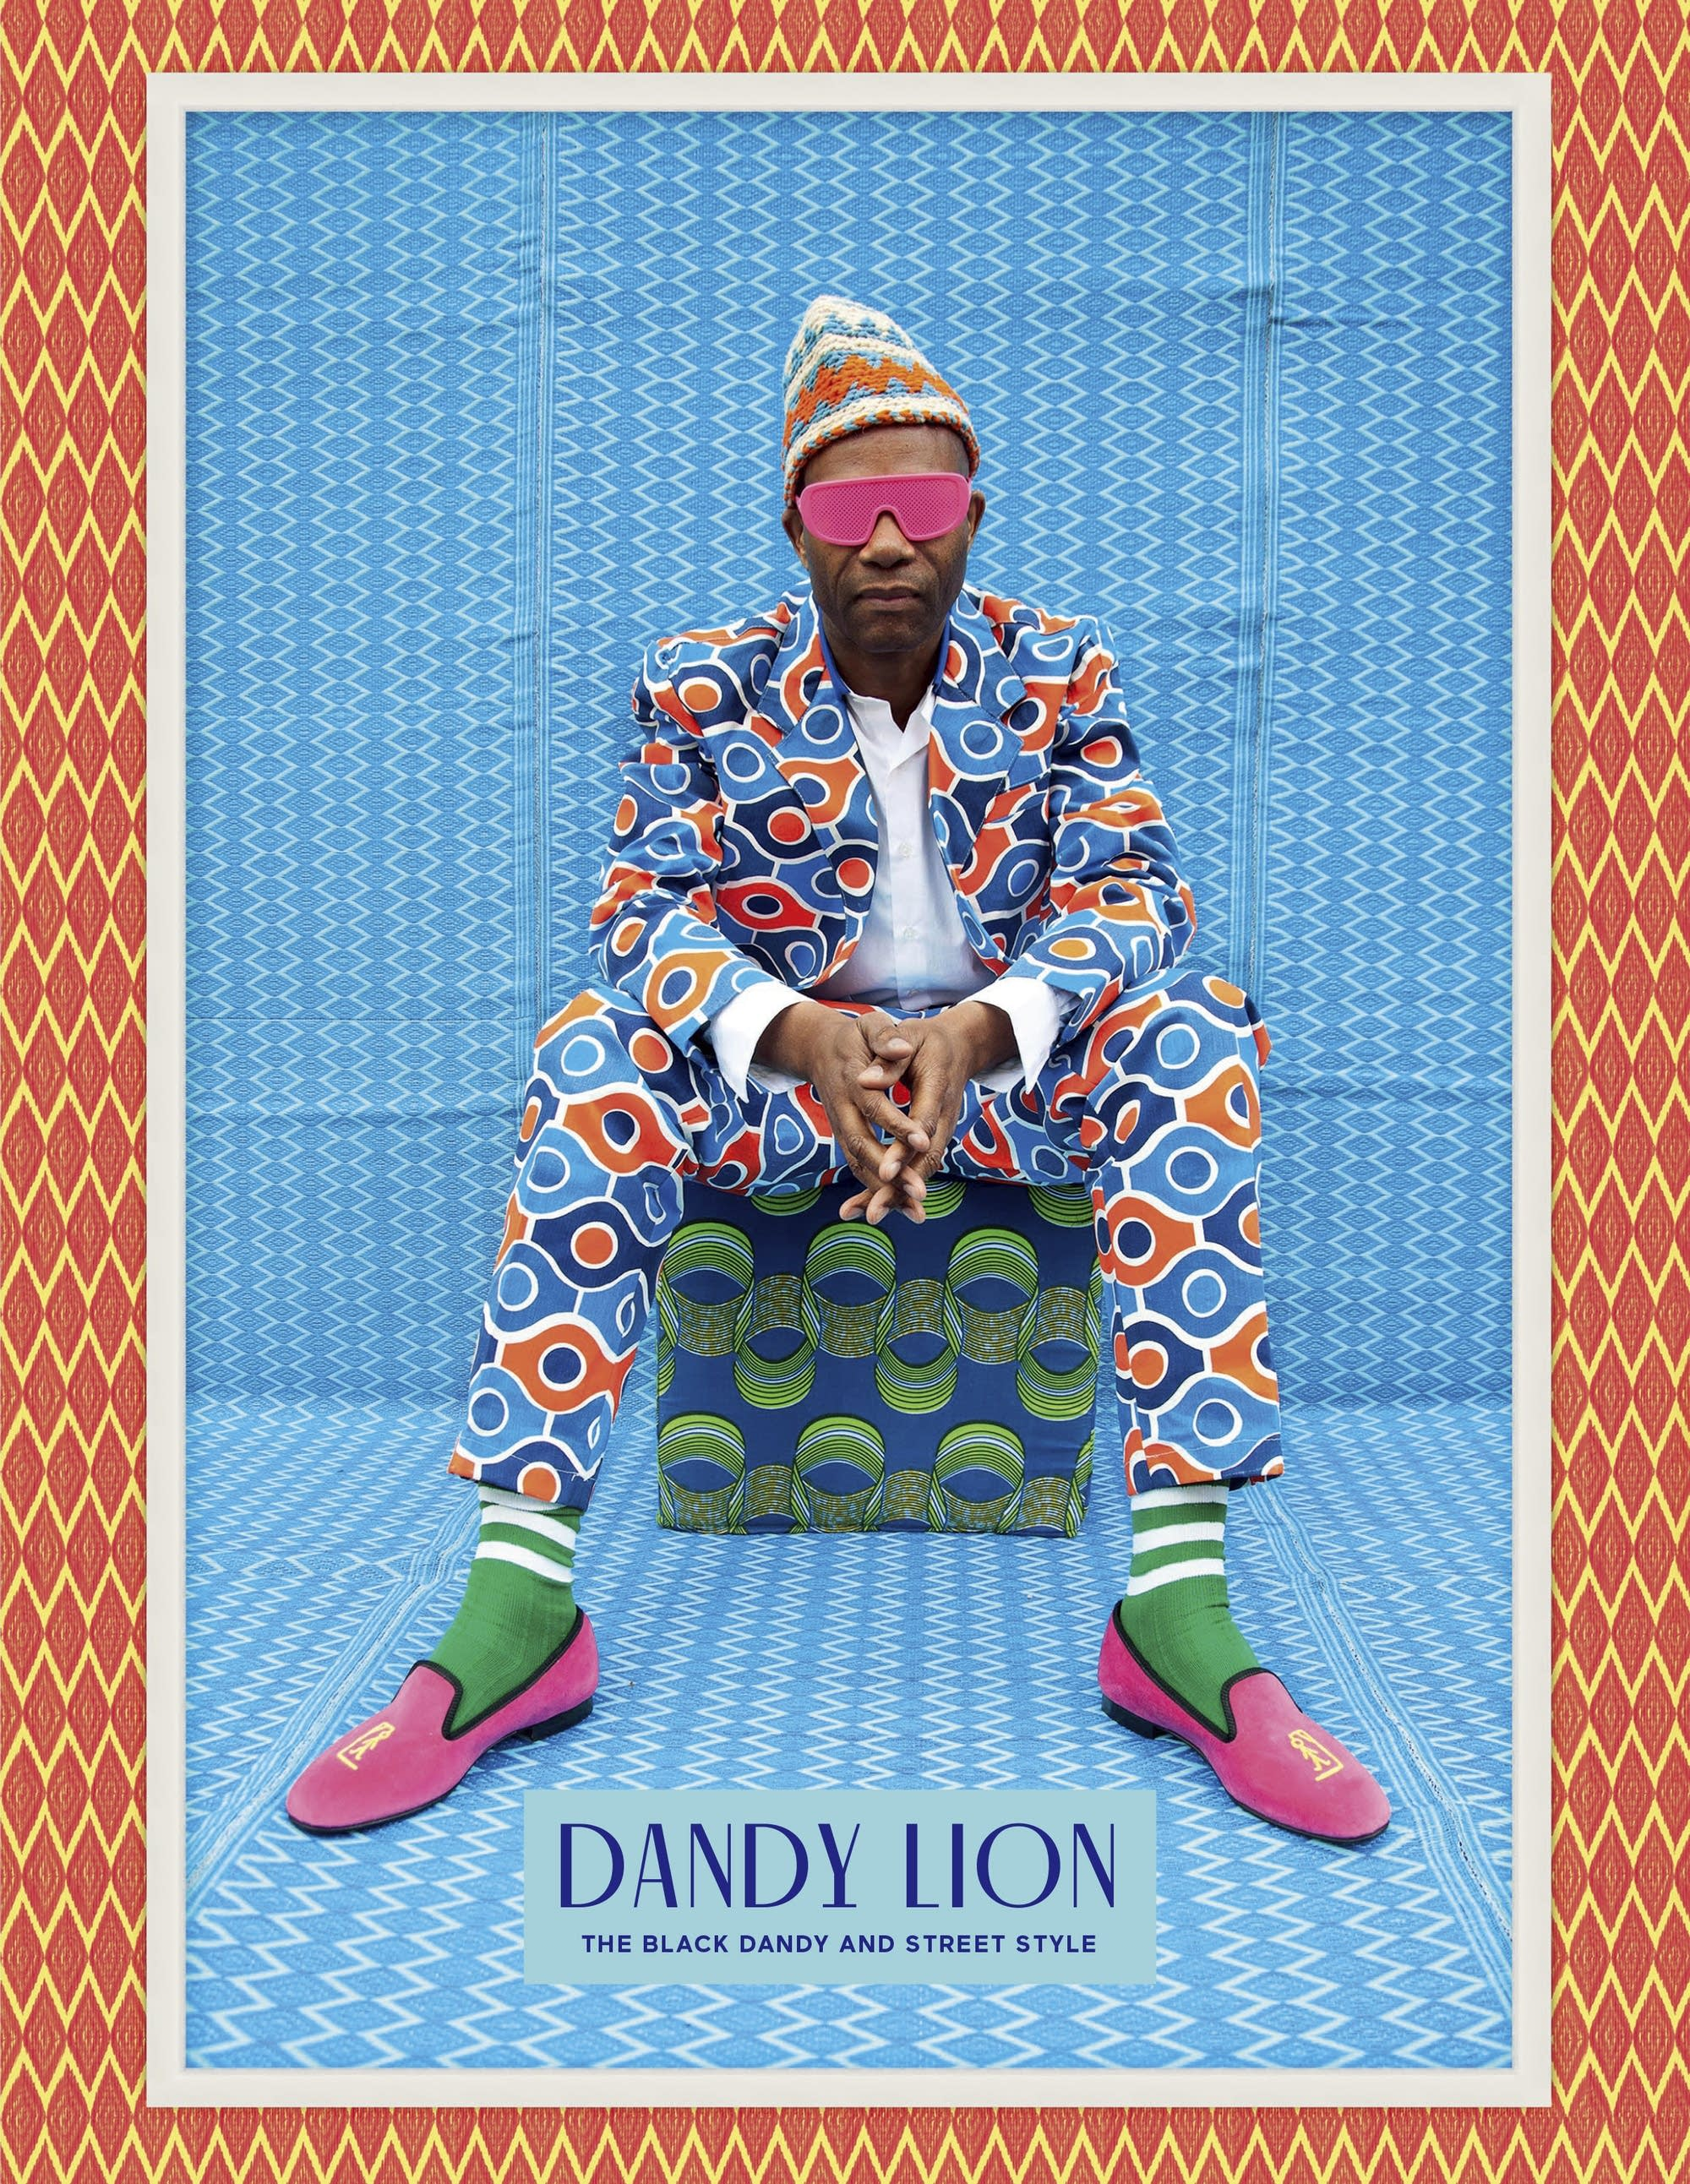 Image result for dandy lion book cover